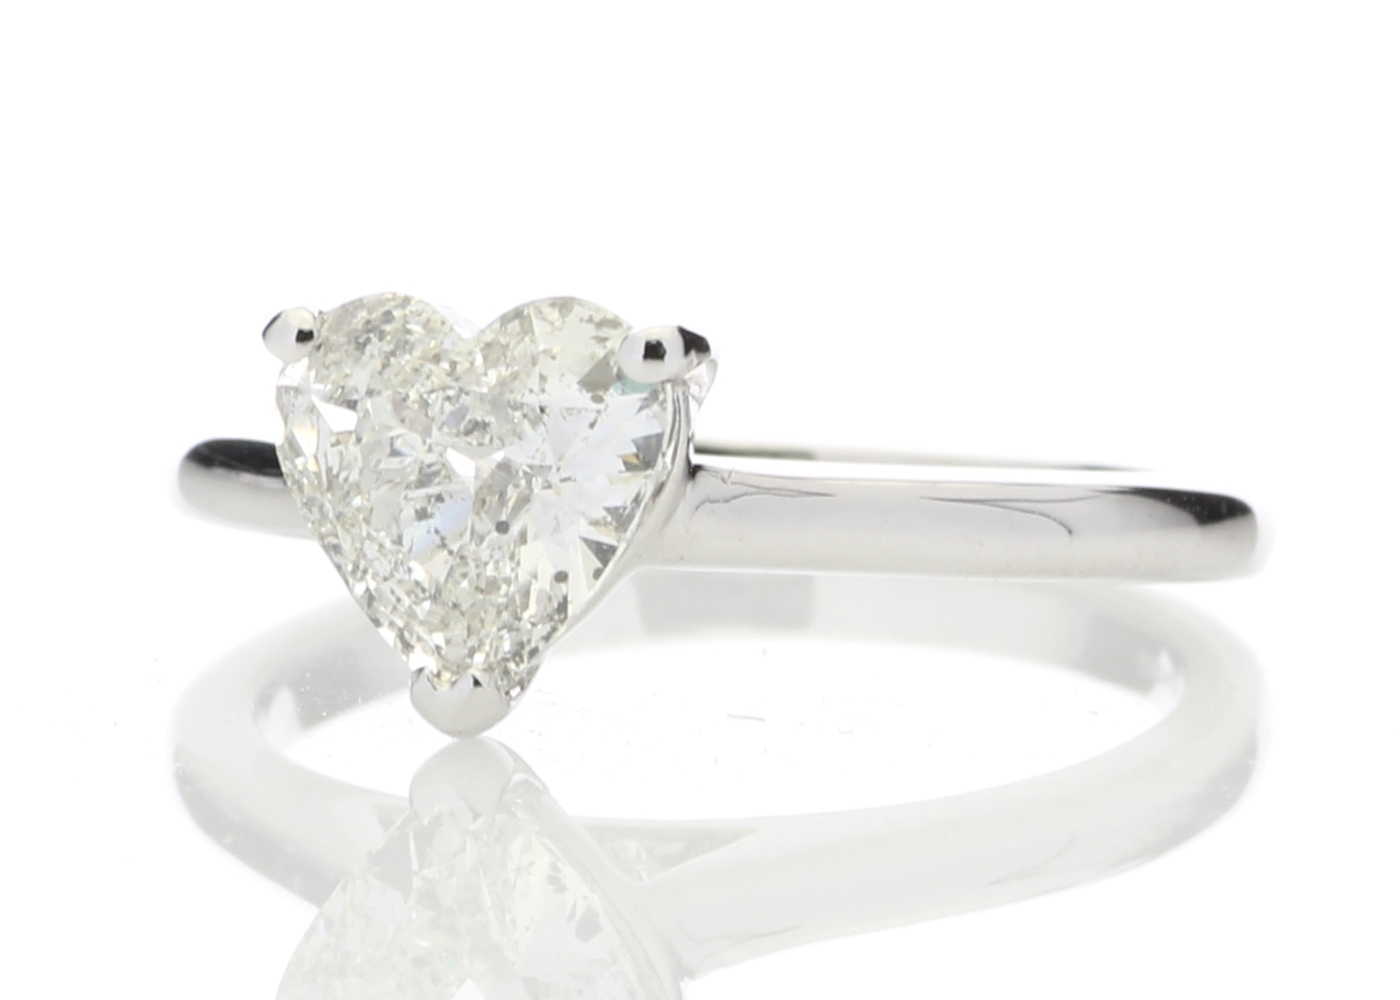 18ct White Gold Single Stone Heart Cut Diamond Ring 1.04 Carats - Image 2 of 5